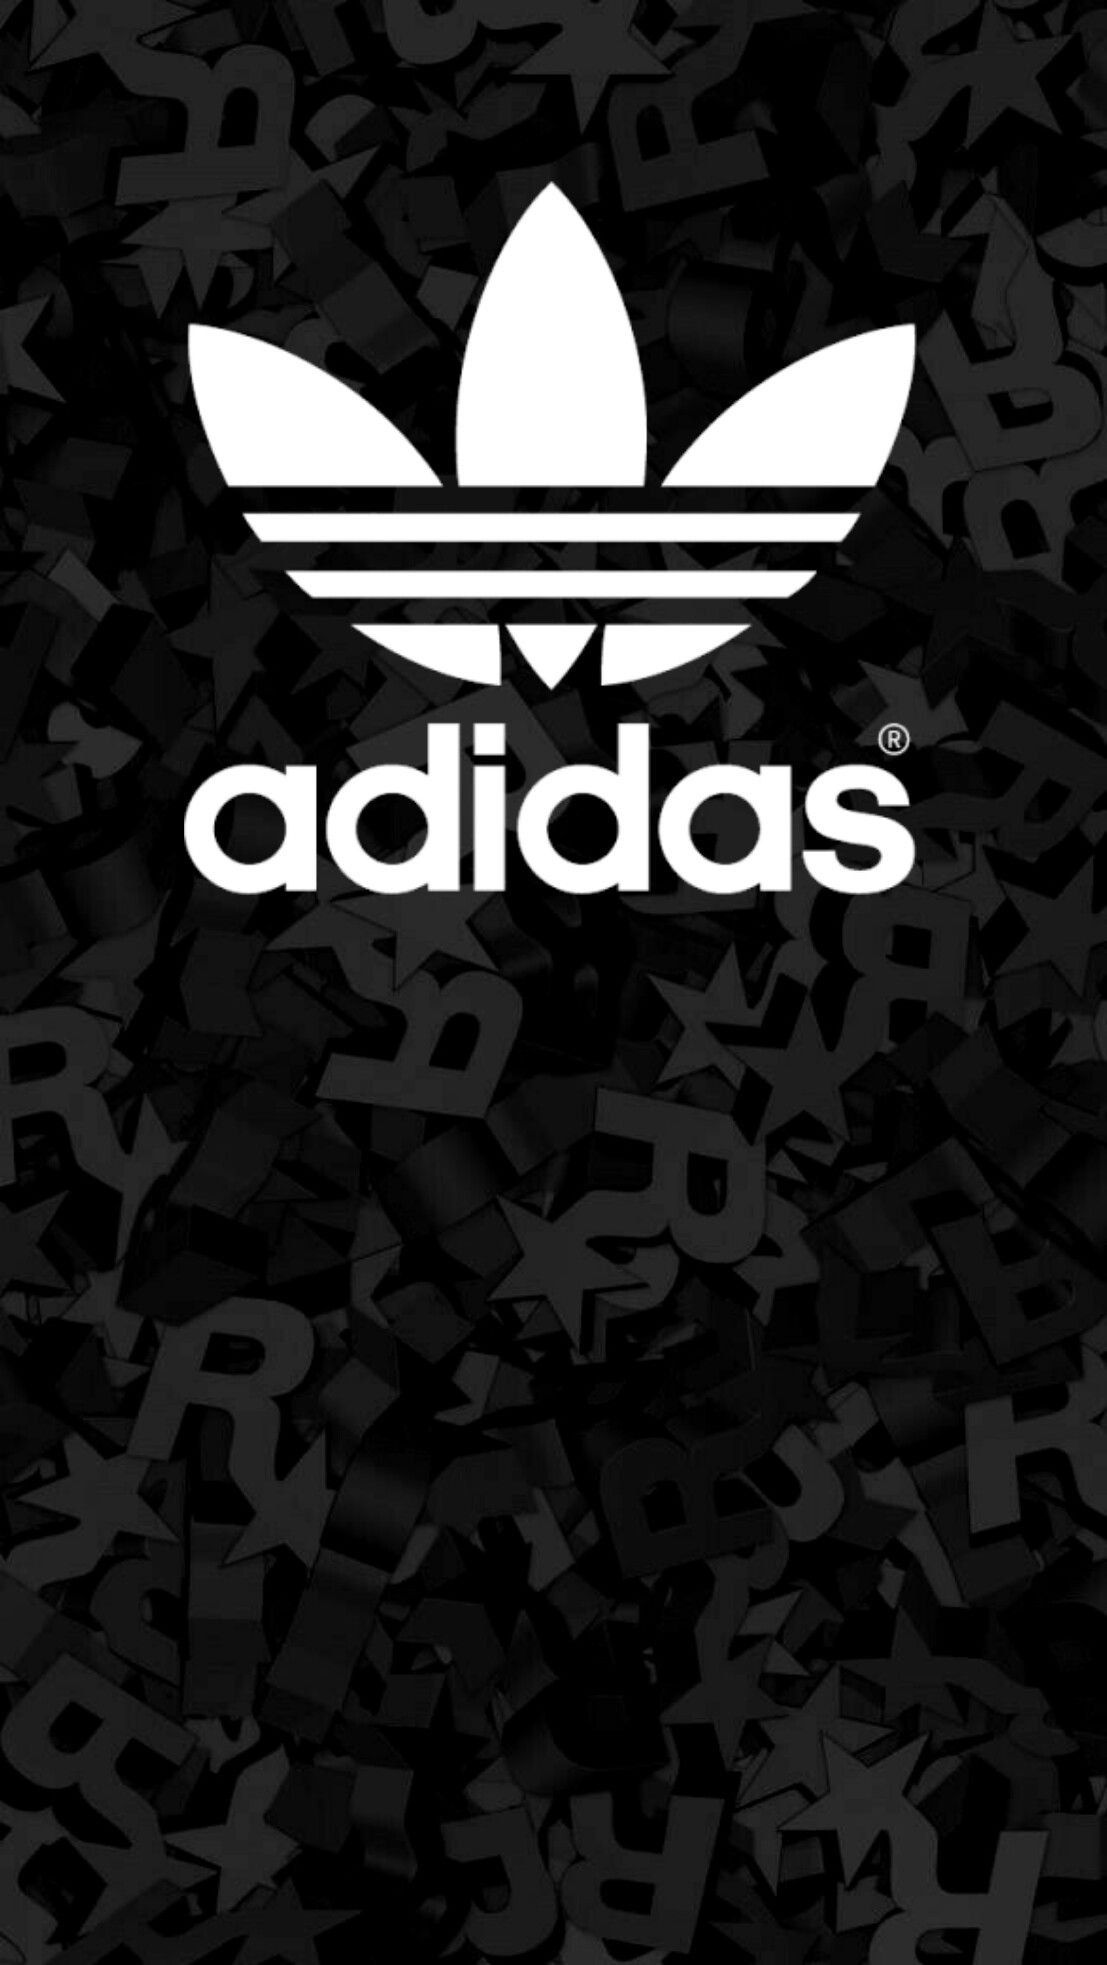 adidas black wallpaper android iphone Nuit saint